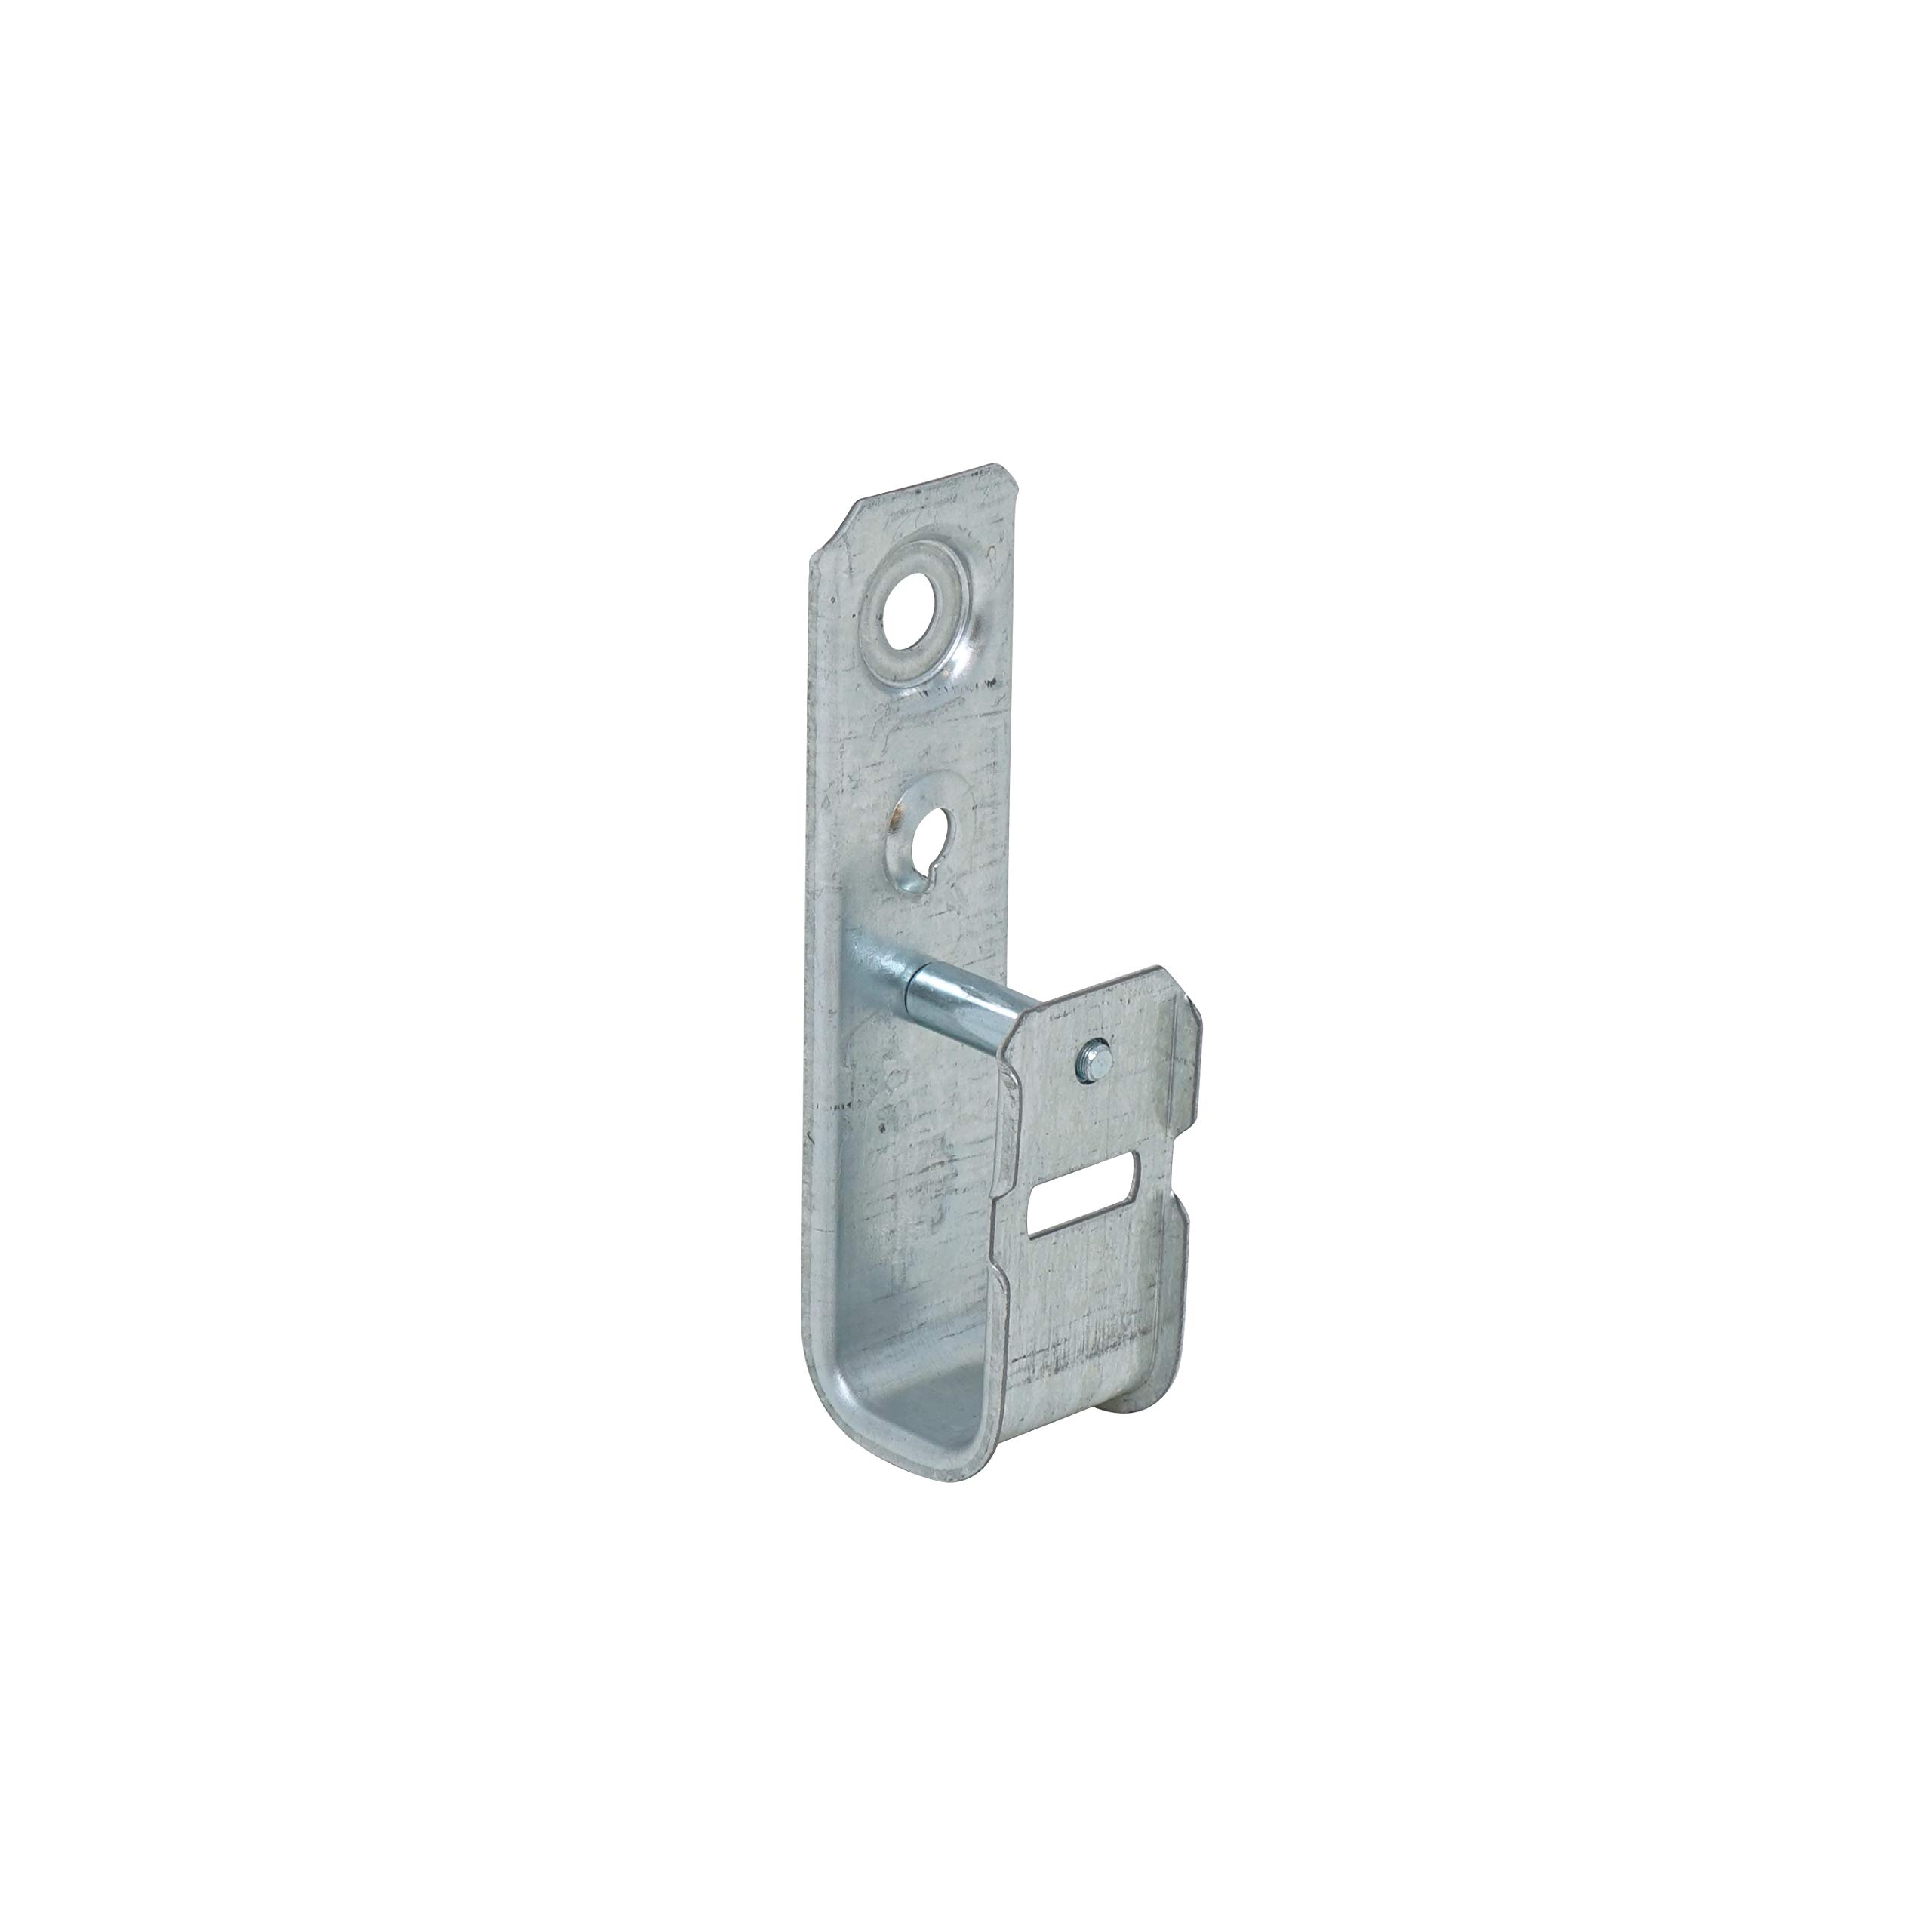 """Southwire SW-JHK-21 1-5/16"""" Cable Support J-Hook, Holds 40 Cat 5E Wires, Zinc Plated Steel Ceiling Mount, 25 Pack, 1-5/16 Inch, Silver"""